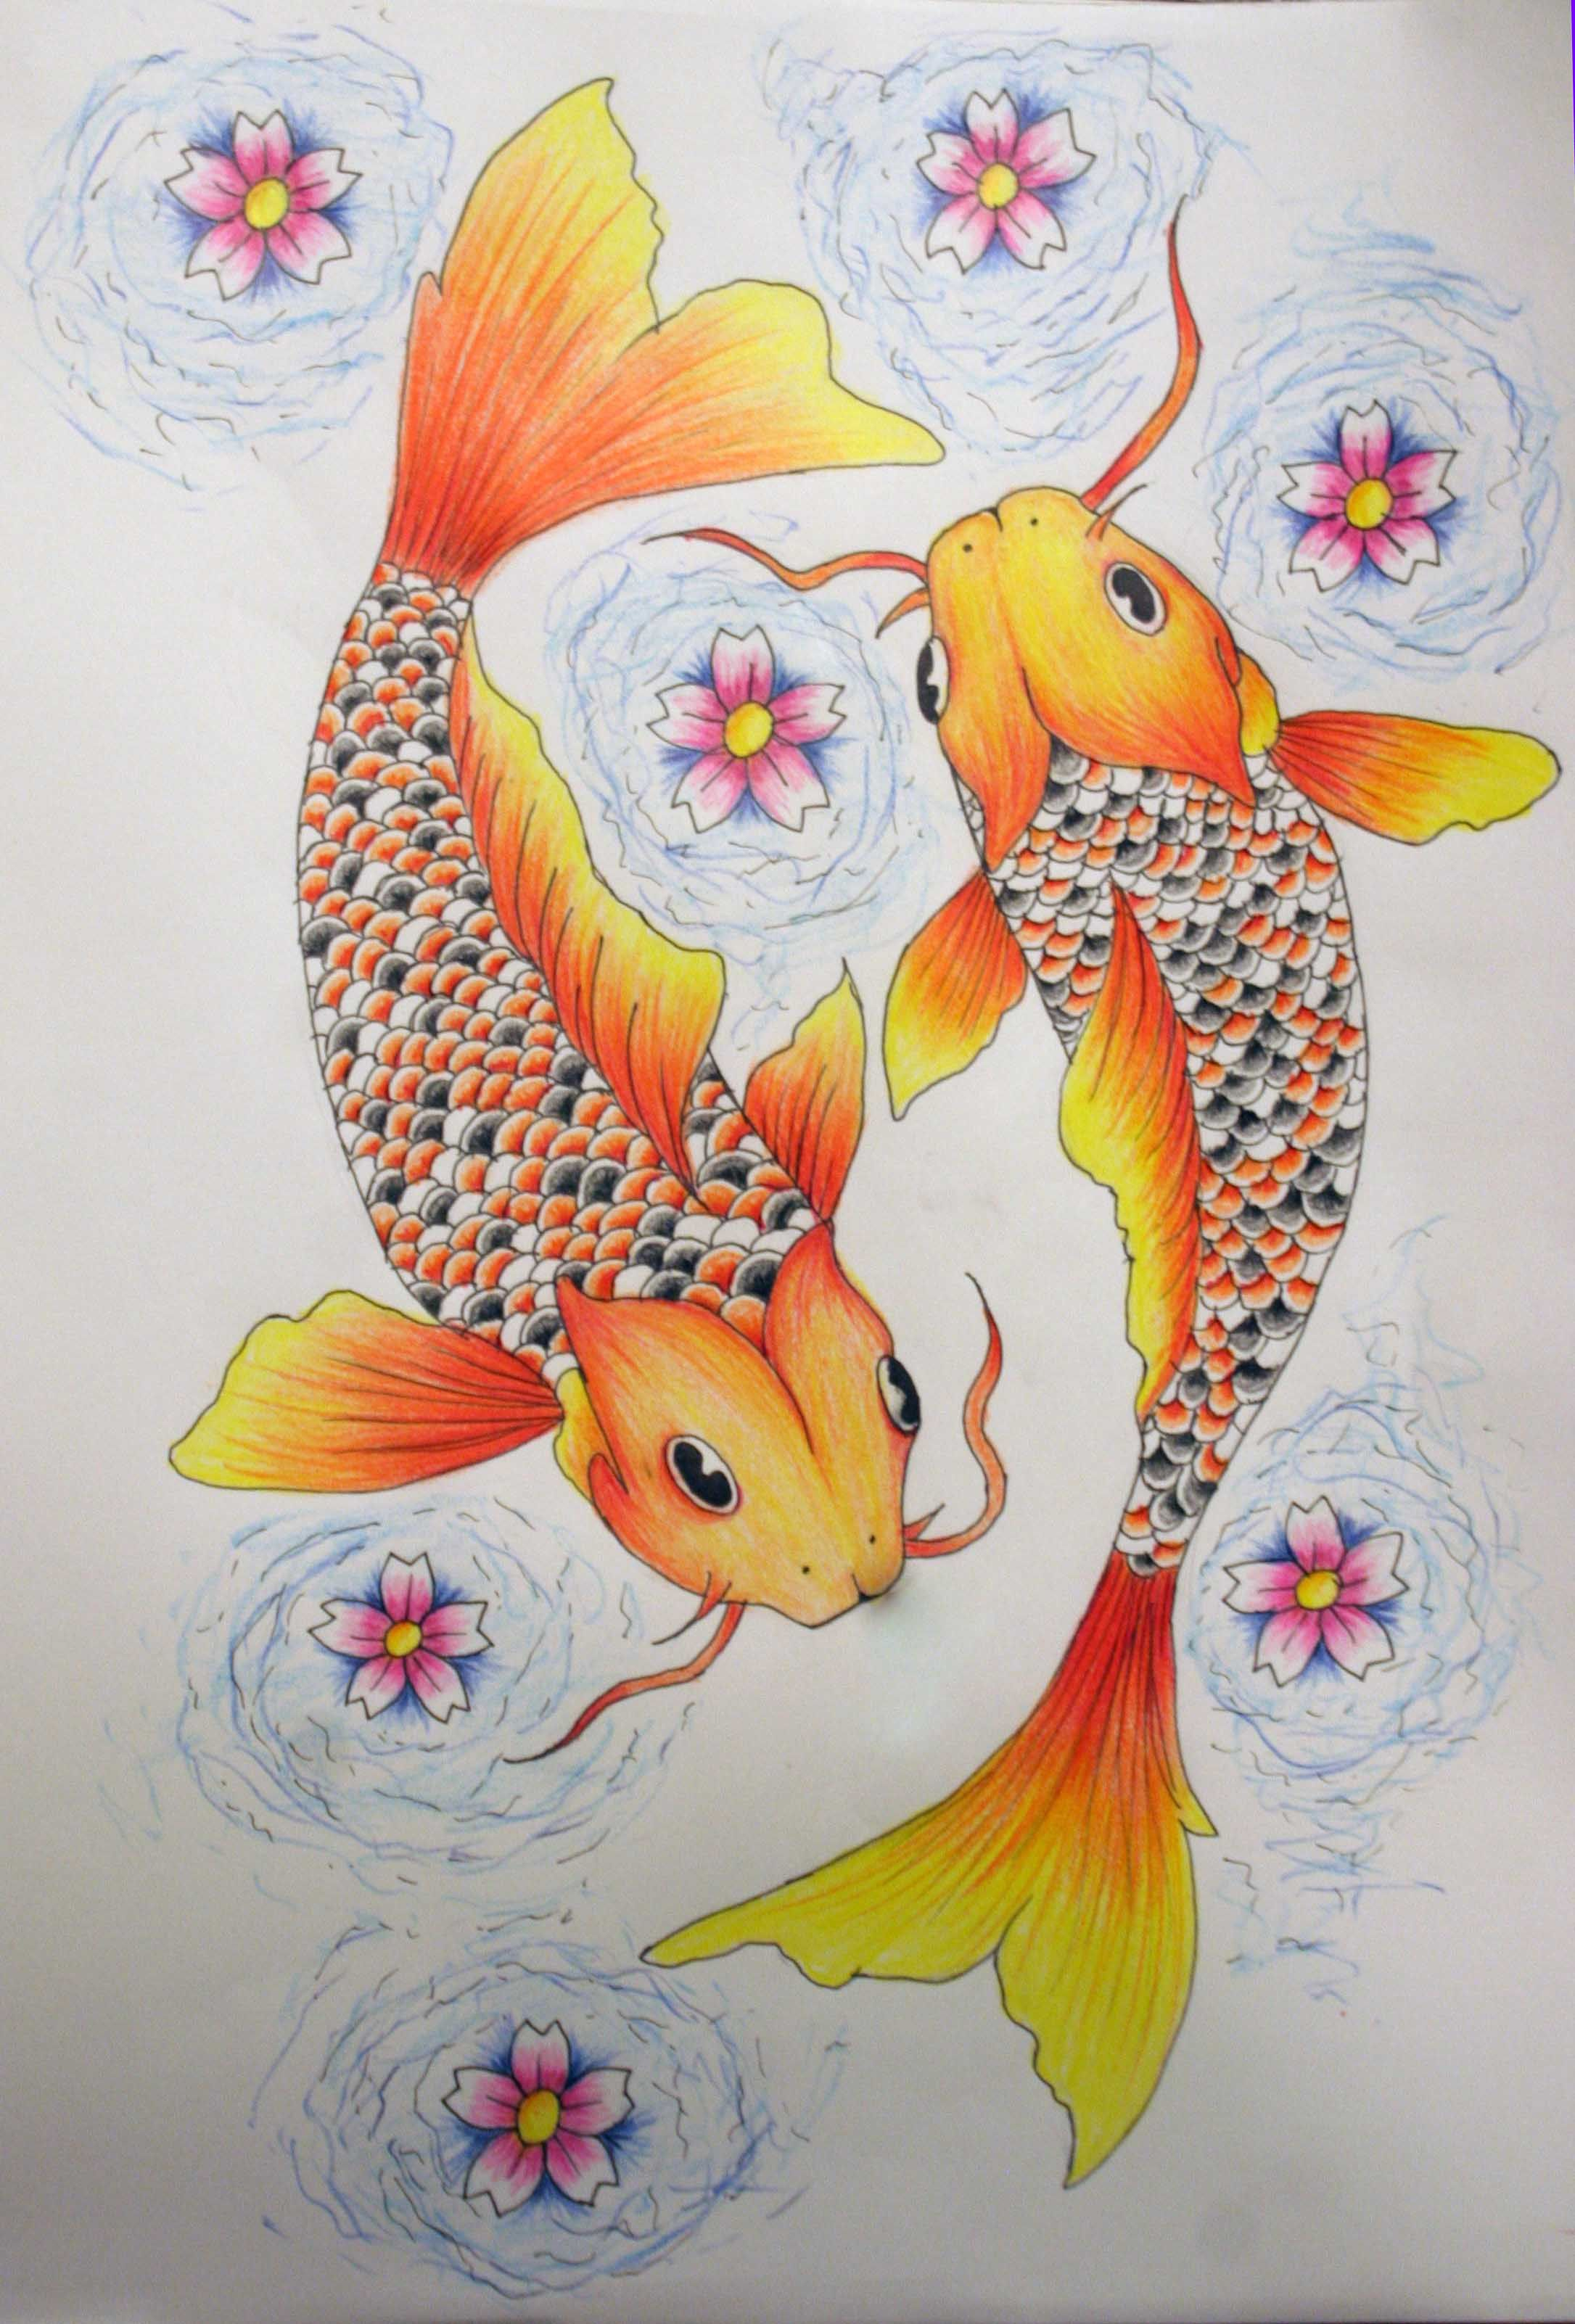 Pisces Tattoo Color By Kelseysparrow67 On Deviantart Pisces Tattoos Pisces Tattoo Designs Fish Drawings